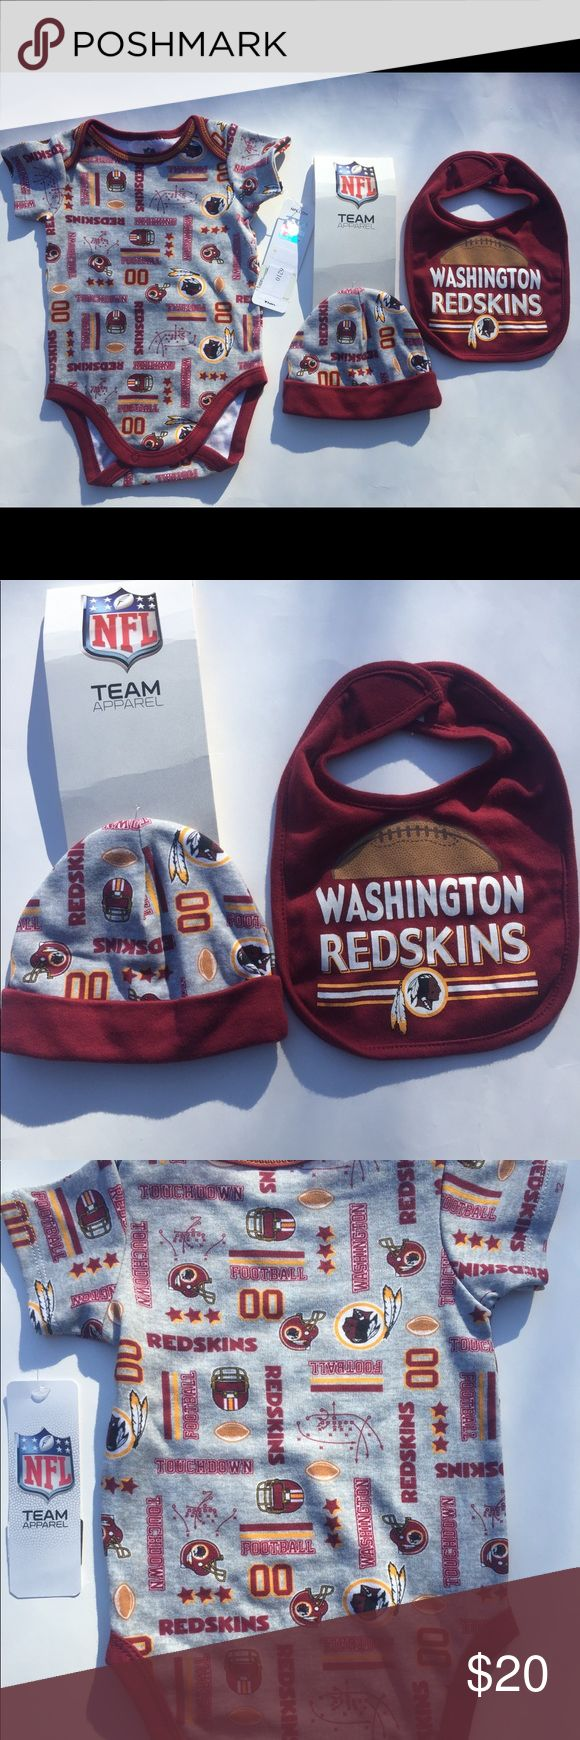 NFL REDSKINS BABY 3 piece set outfit NFL TEAM APPAREL 0-3 months TEAM REDSKINS NEW WITH TAGS IT COMES WITH THE 3 PIECES. ONE-PIECE, HAT AND BIB. They came together but detached from the from the tag they came with but all 3 piece come together. NFL One Pieces Bodysuits